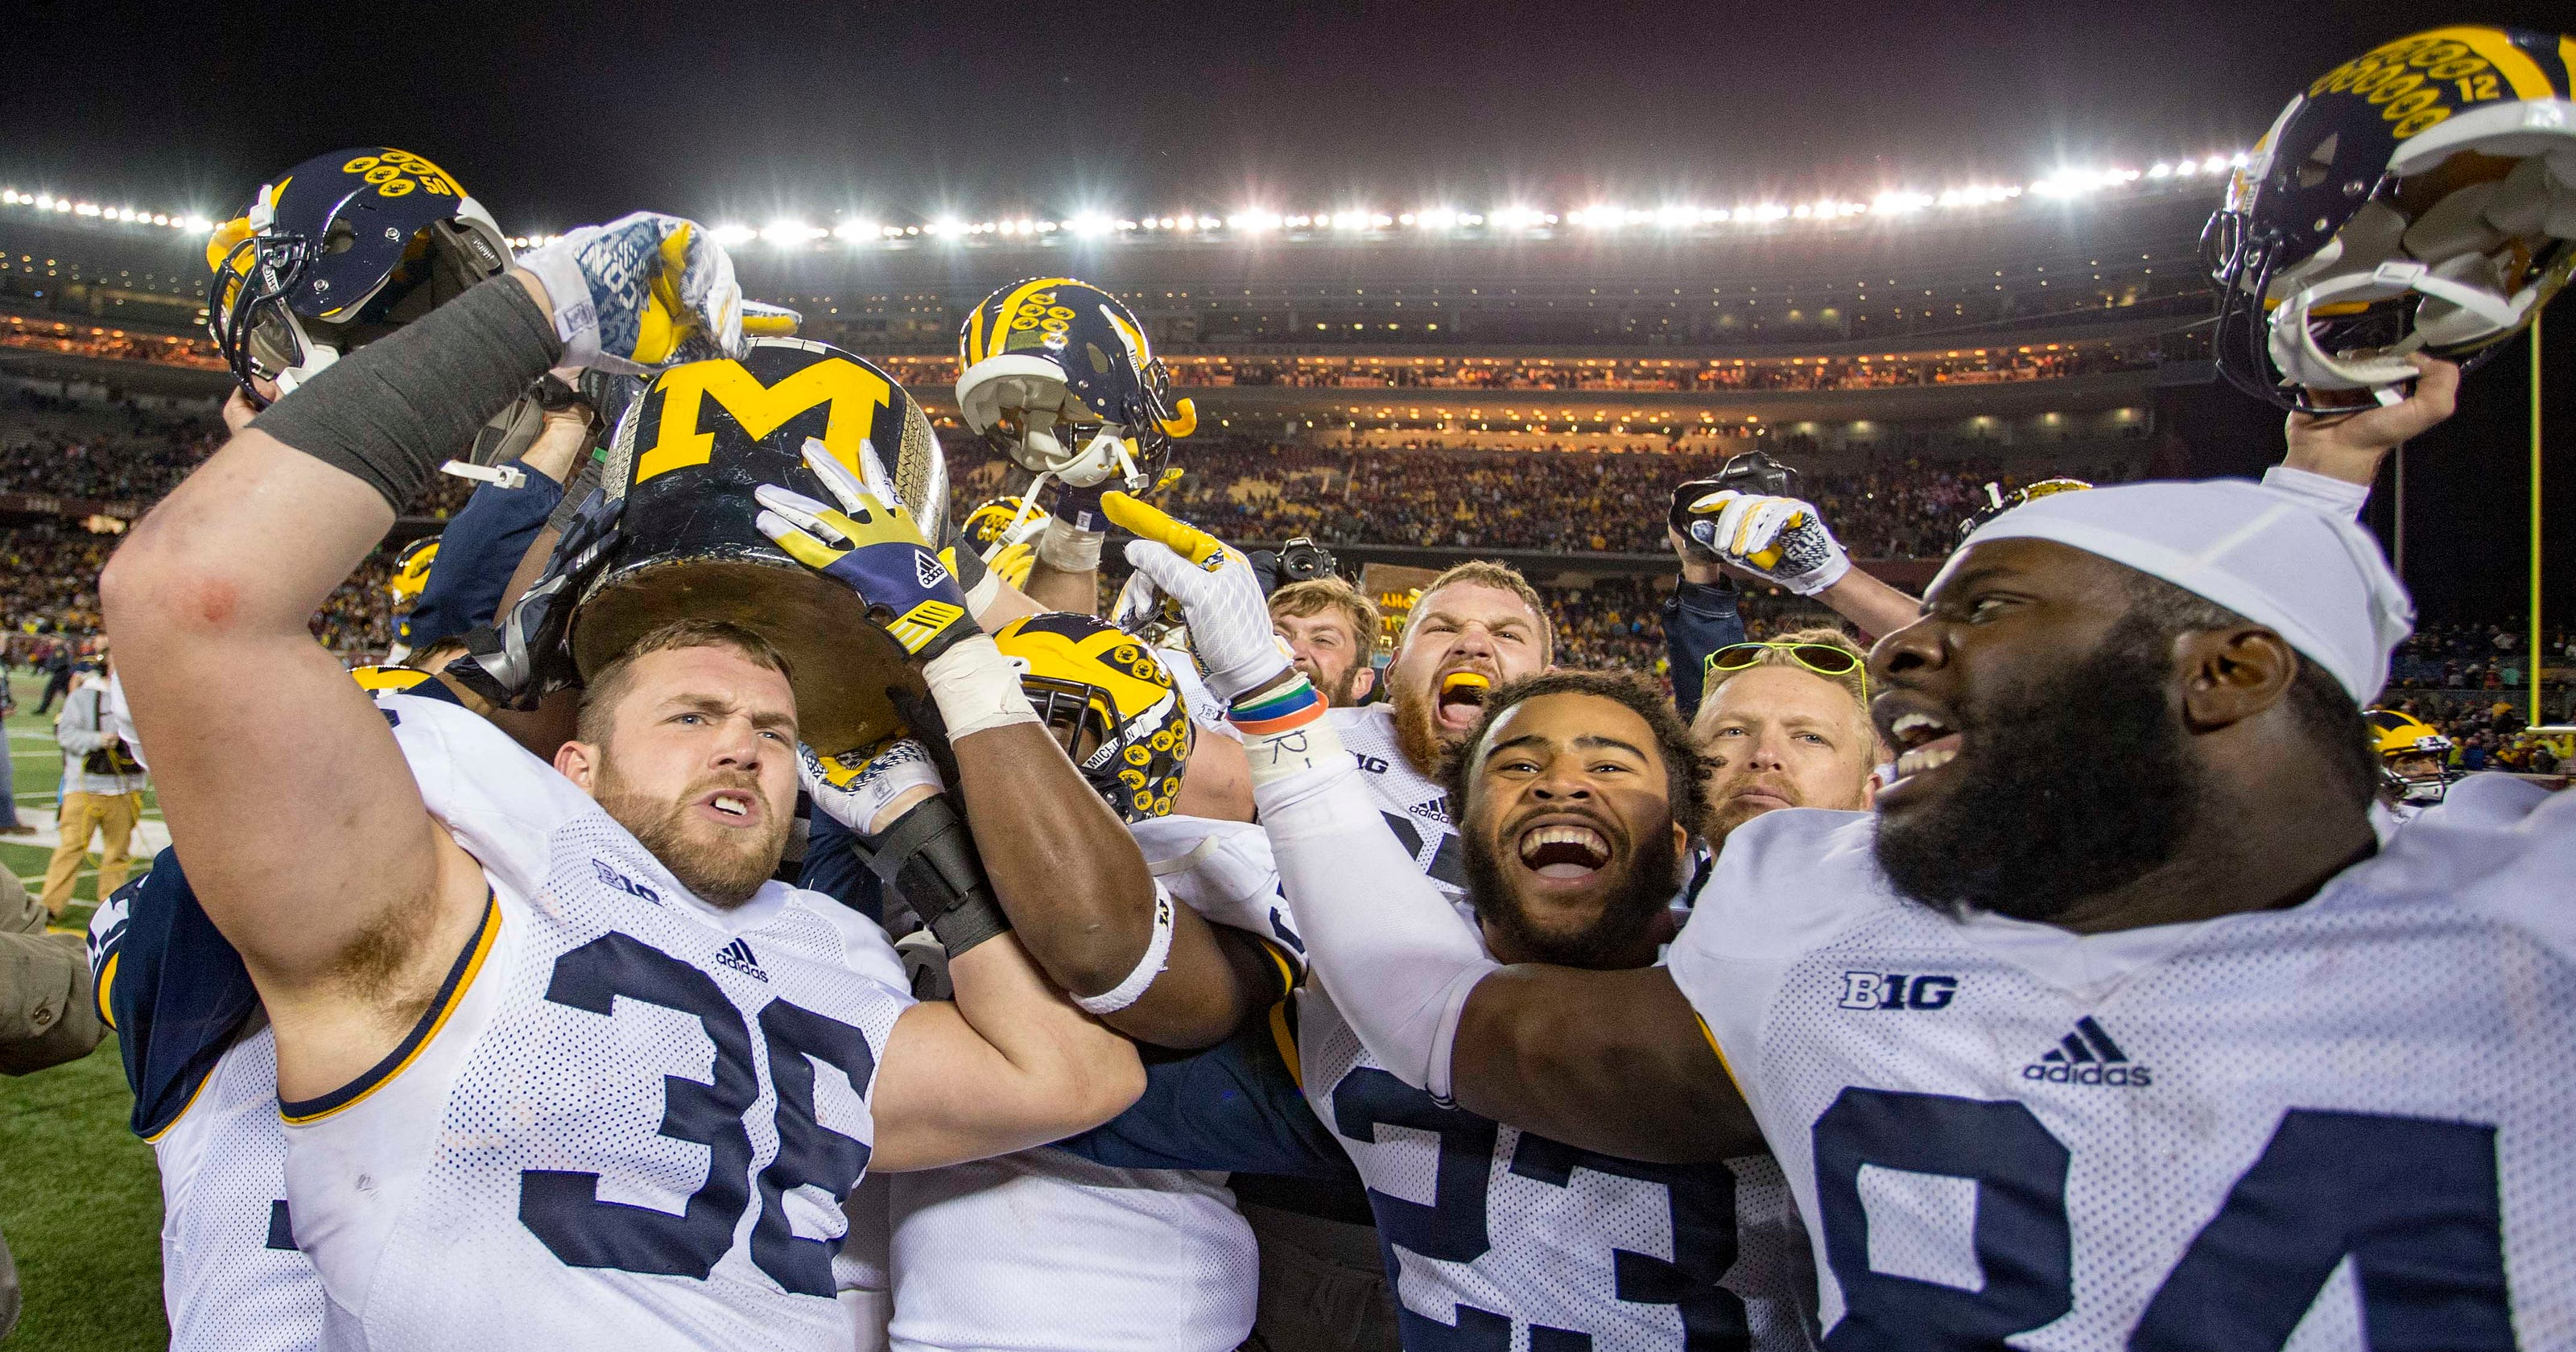 Michigan Wolverines stop quarterback sneak on final play for